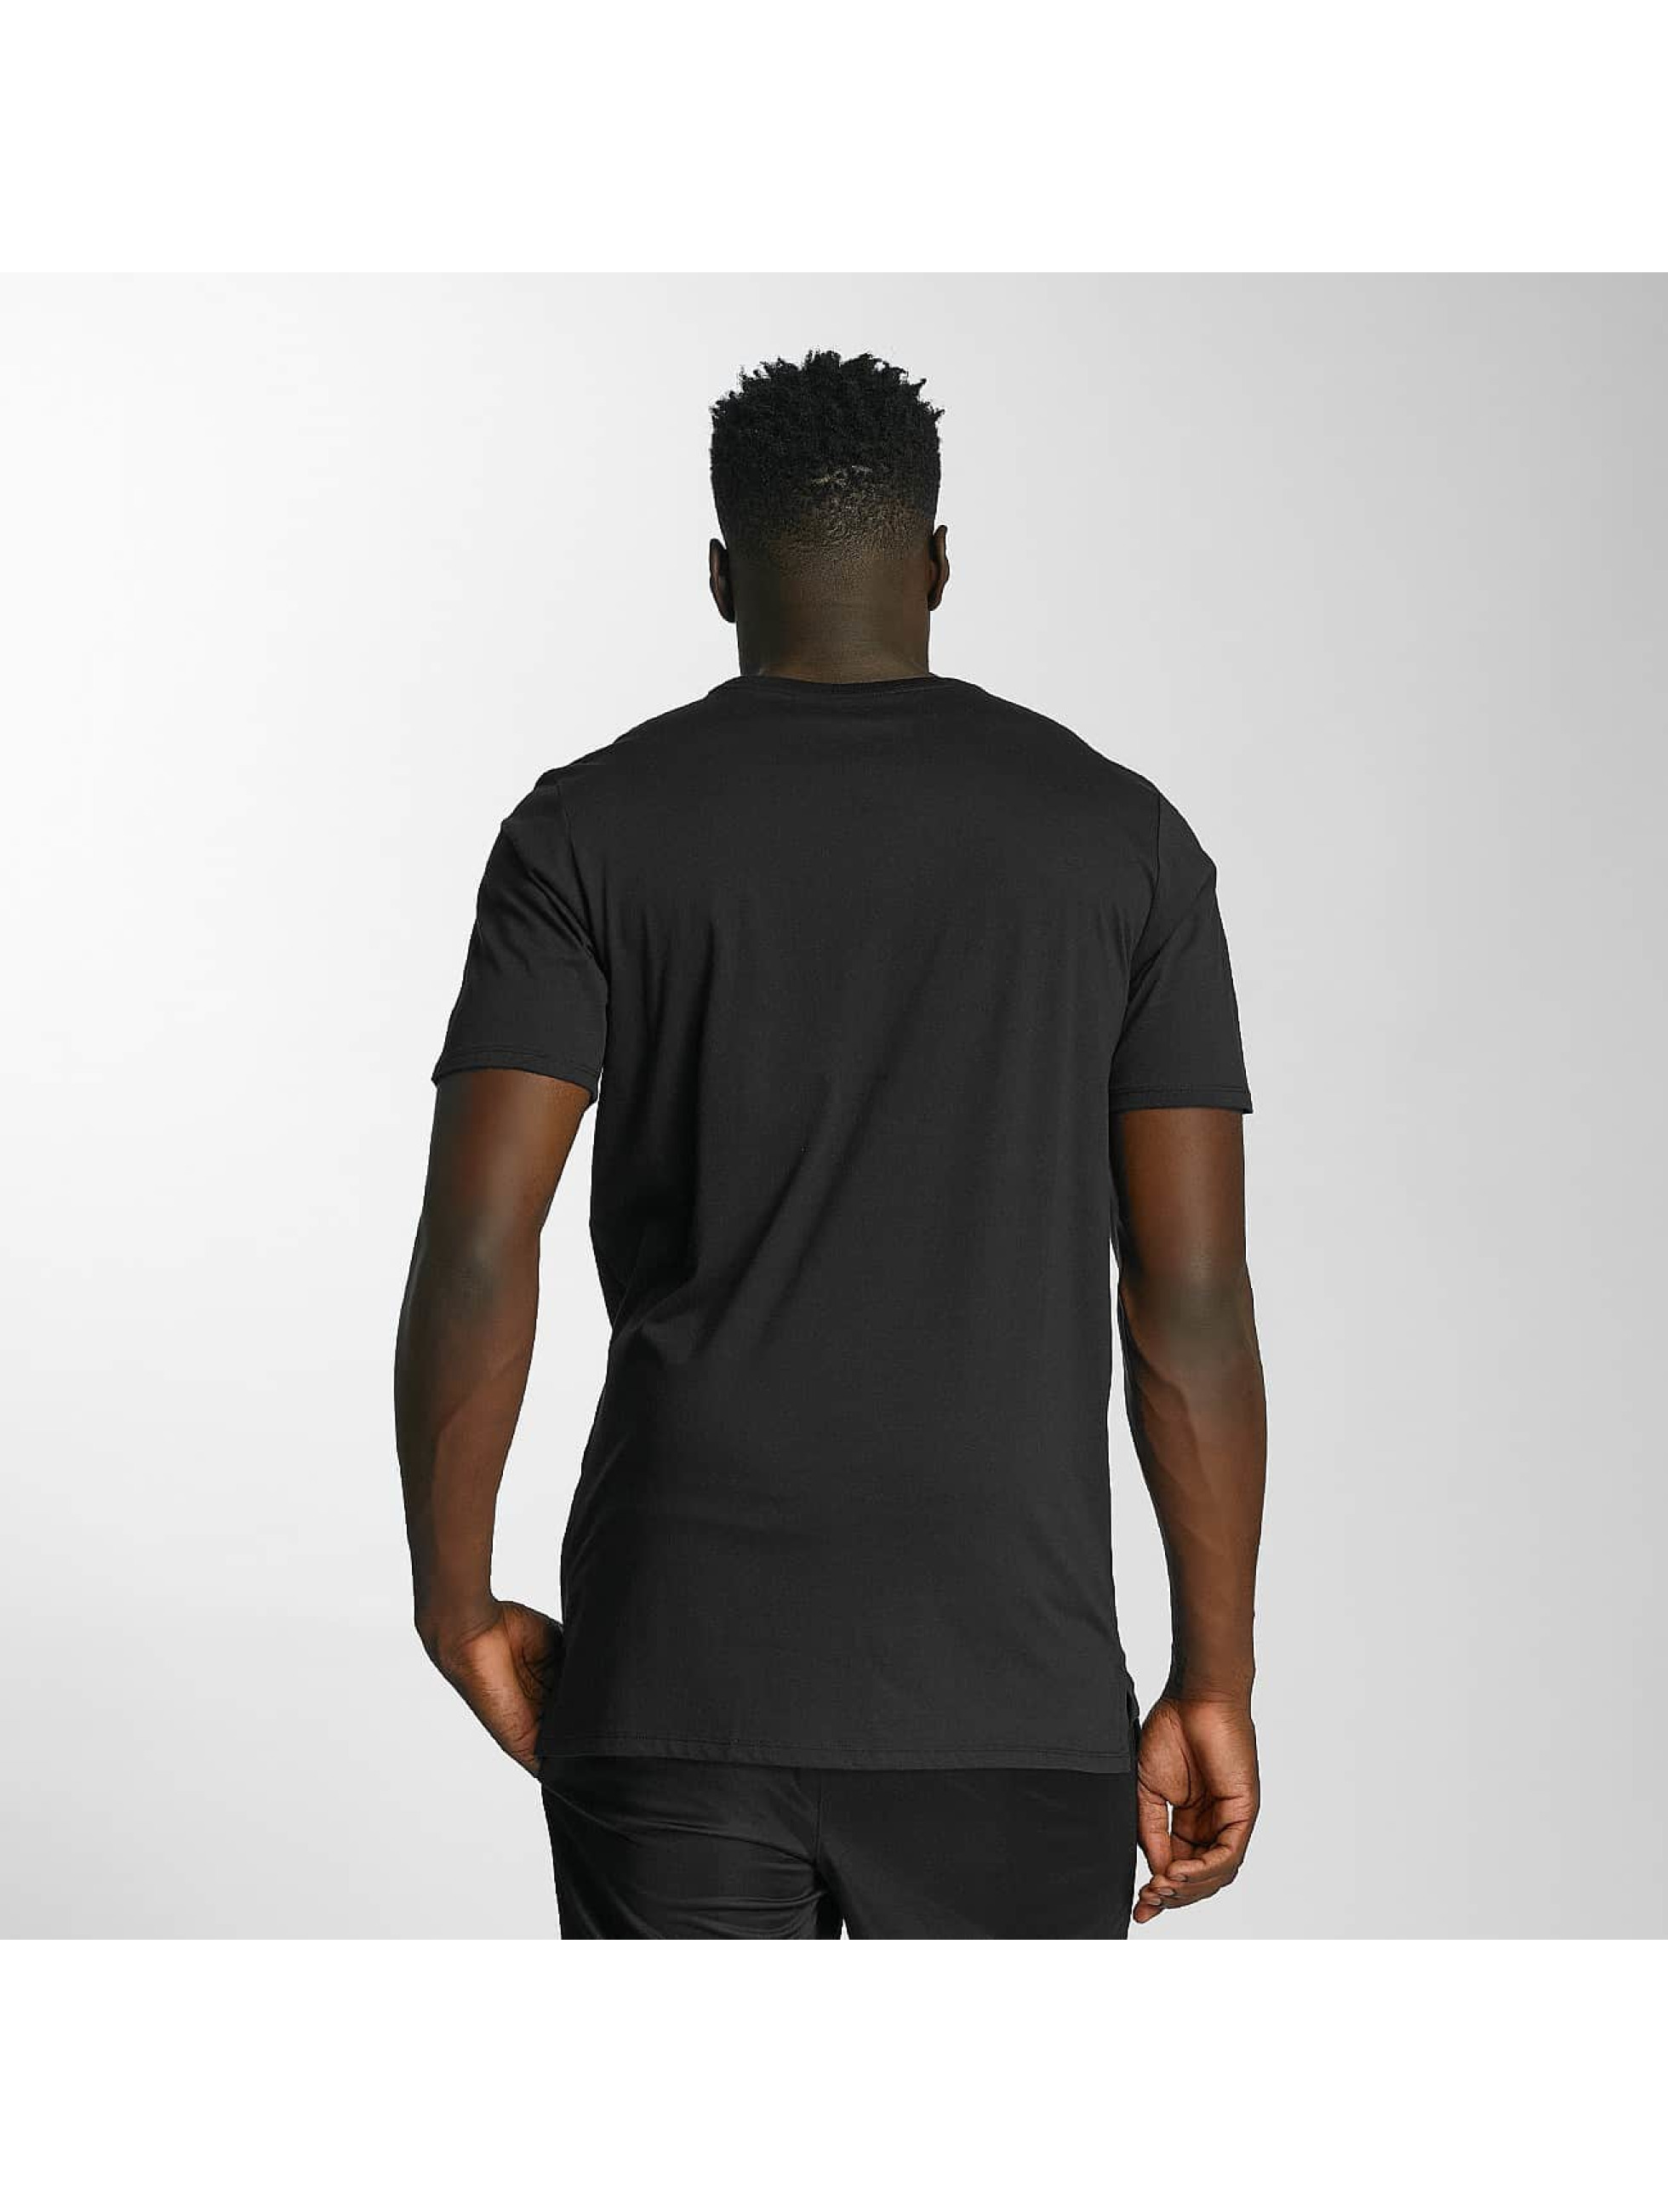 Nike T-Shirt NSW DRPTL AV15 JDI black